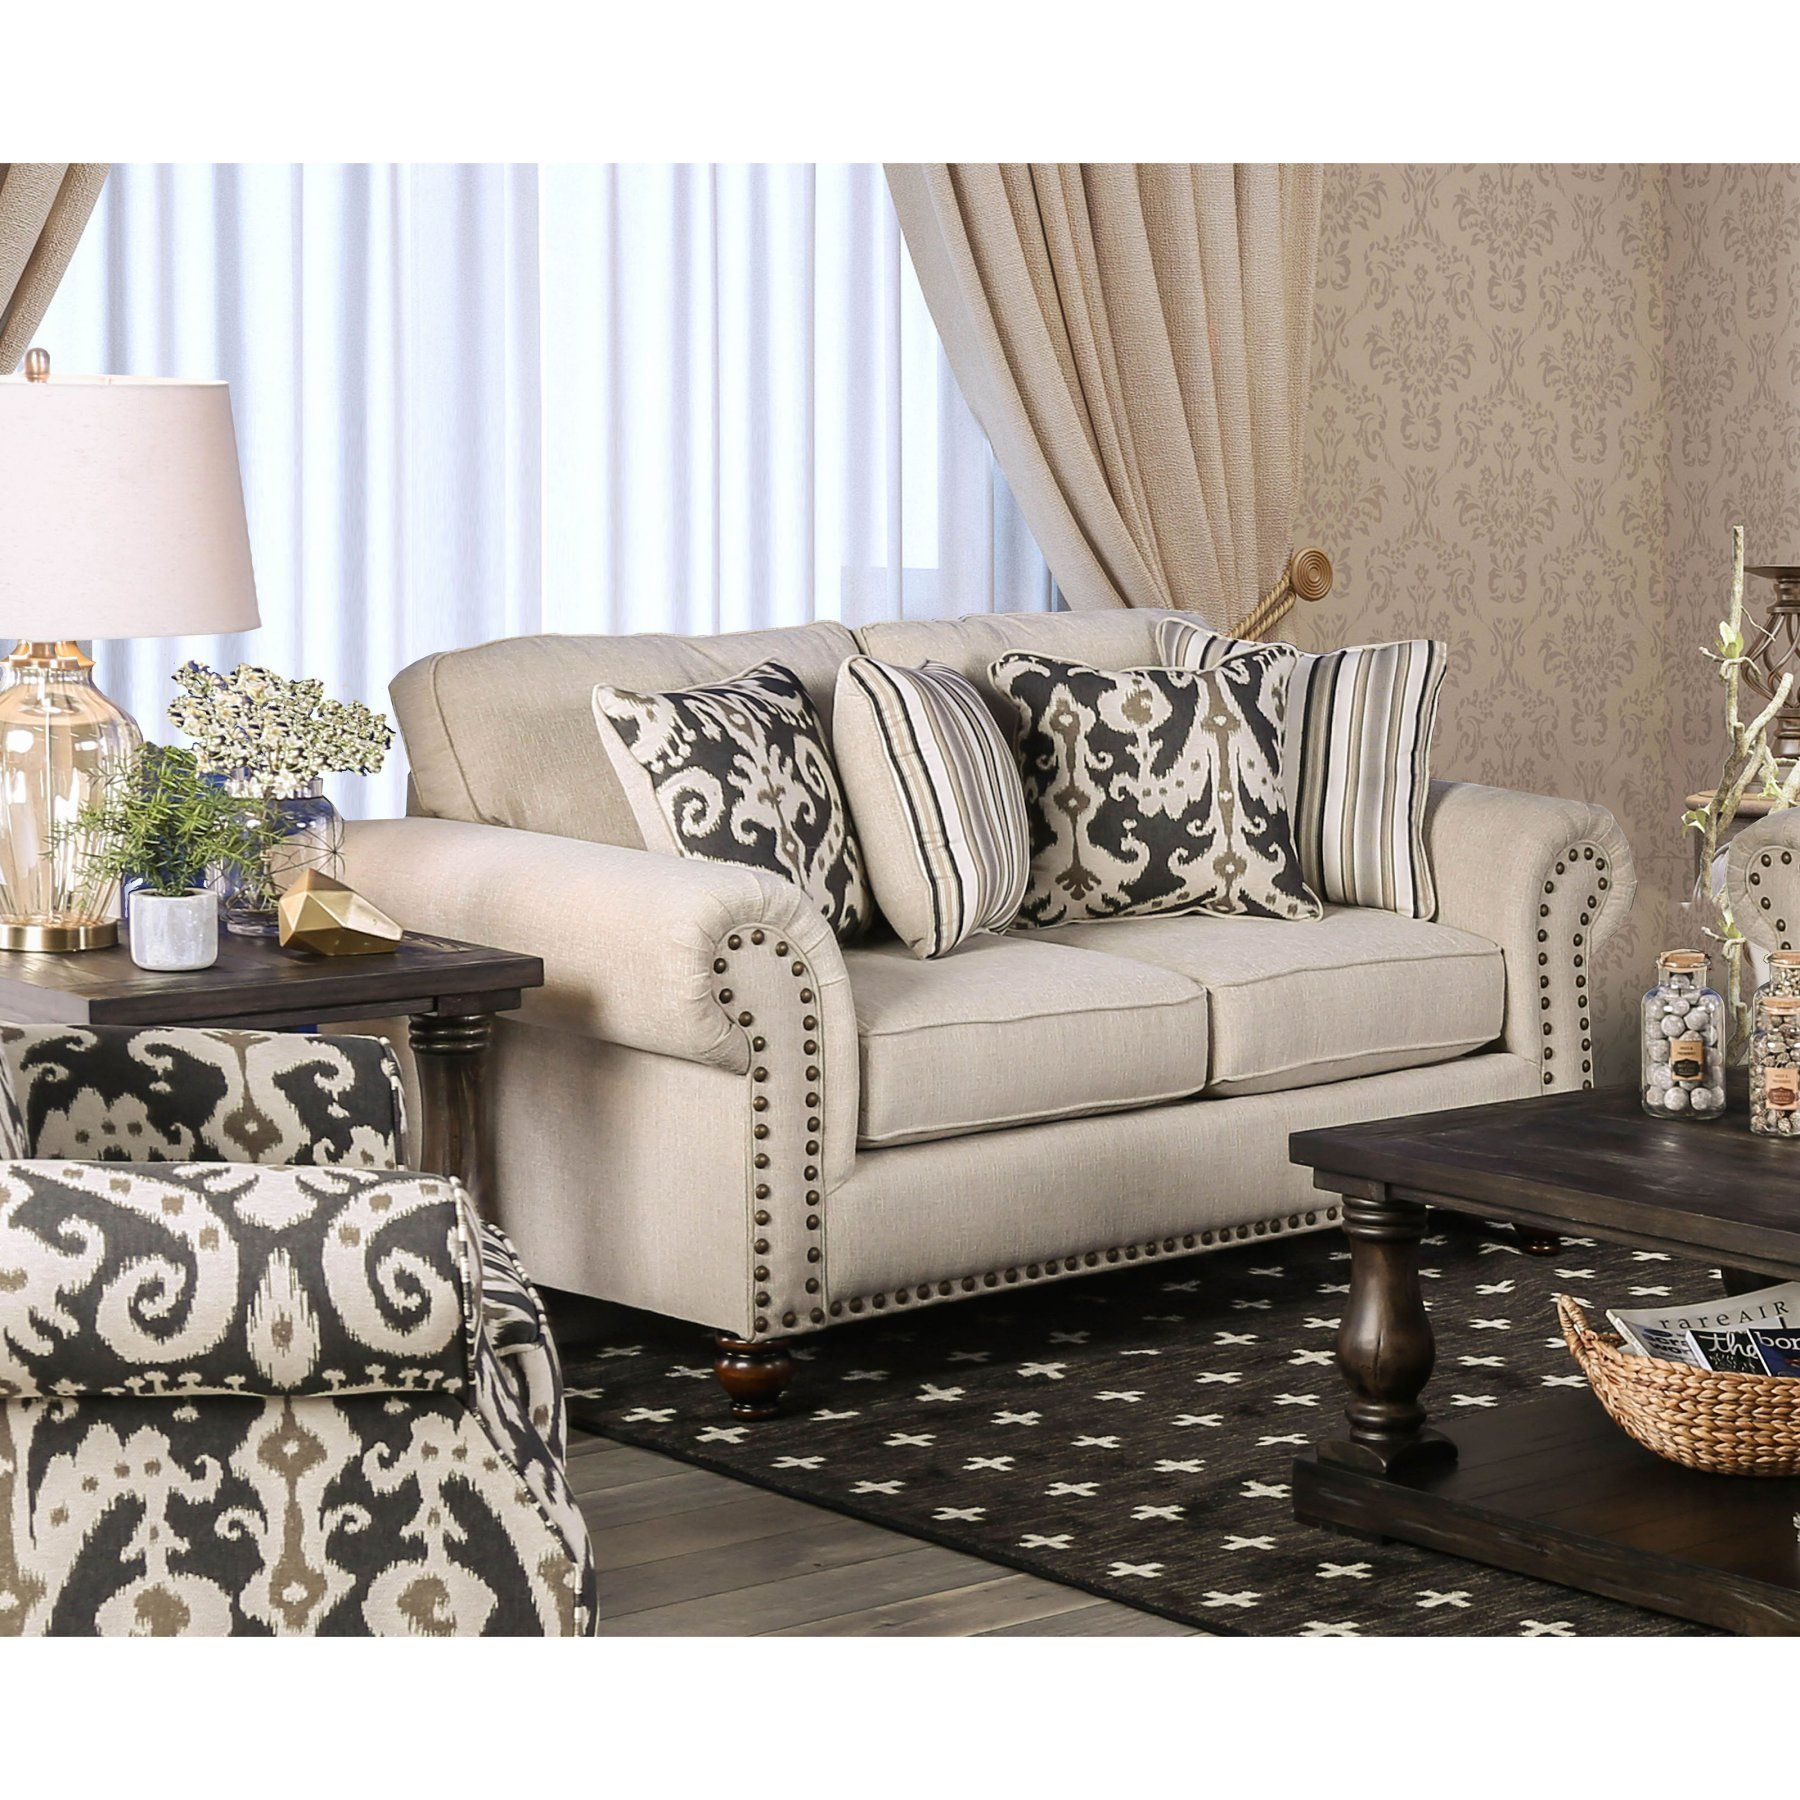 Serta Upholstery Wheatfield Sofa Furniture Of America Norwald Loveseat Idf 8111 Lv Products